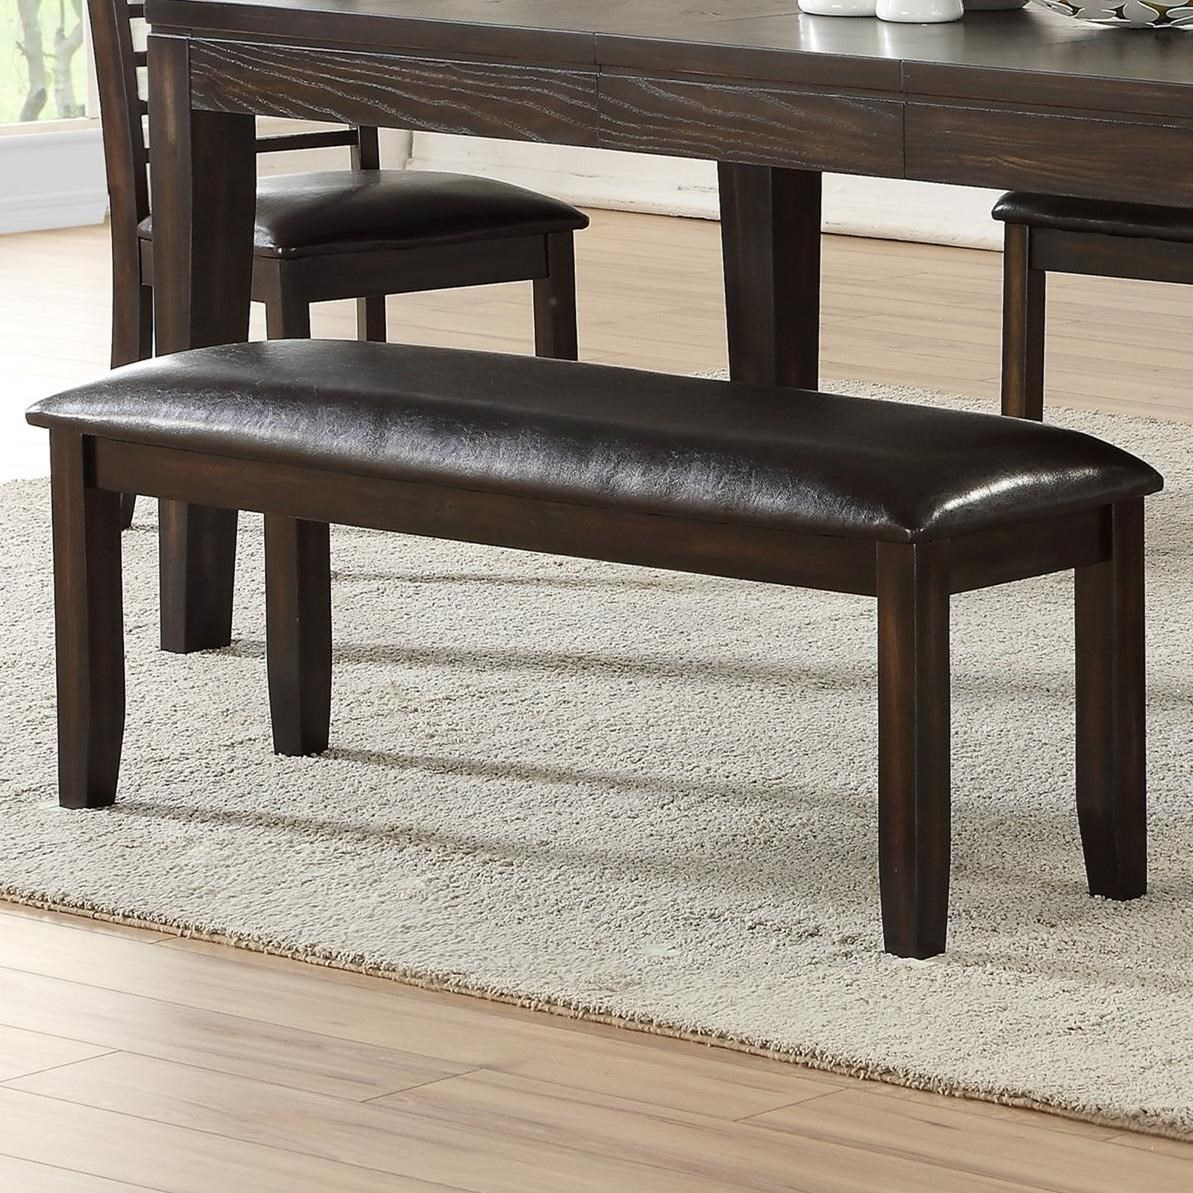 Ally Dining Bench by Steve Silver at Northeast Factory Direct